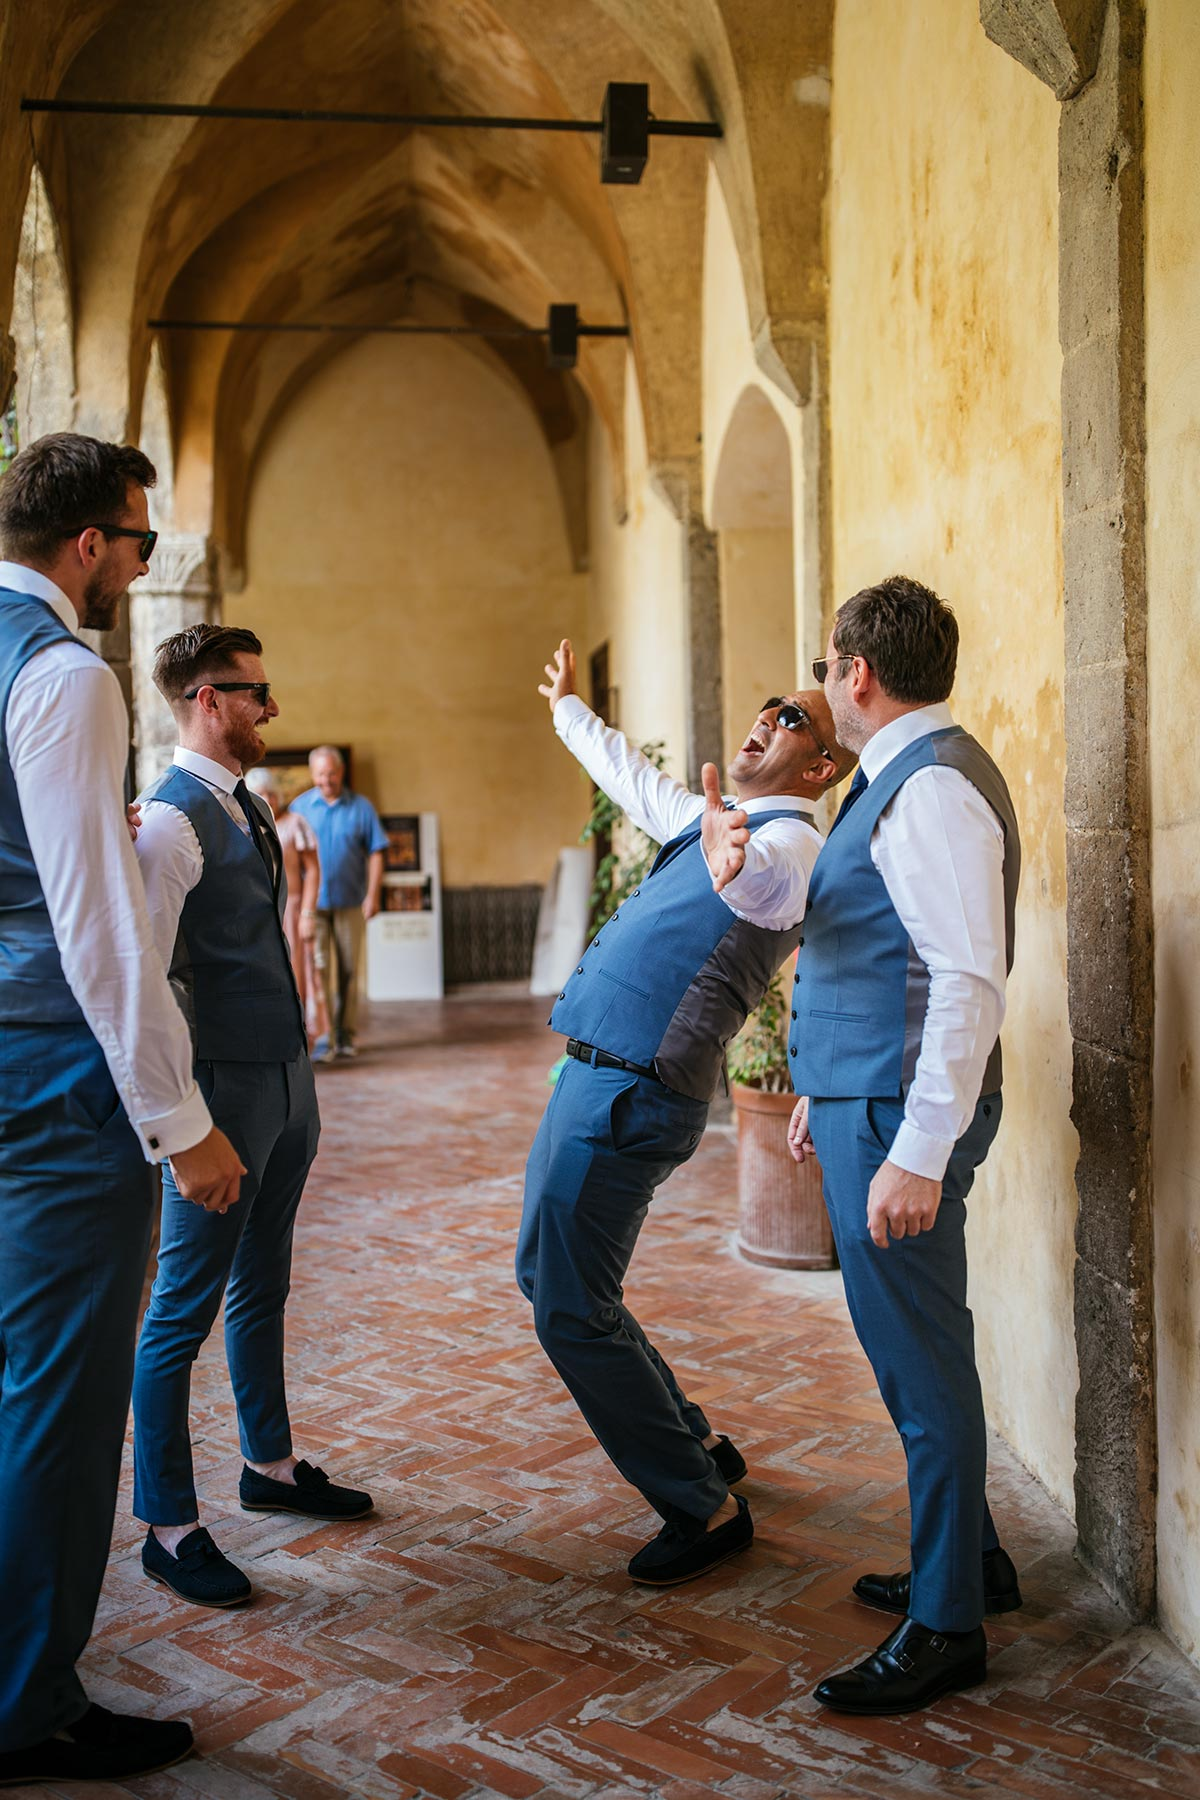 Reportage-wedding-photography-Sorrento-Angie-Muss